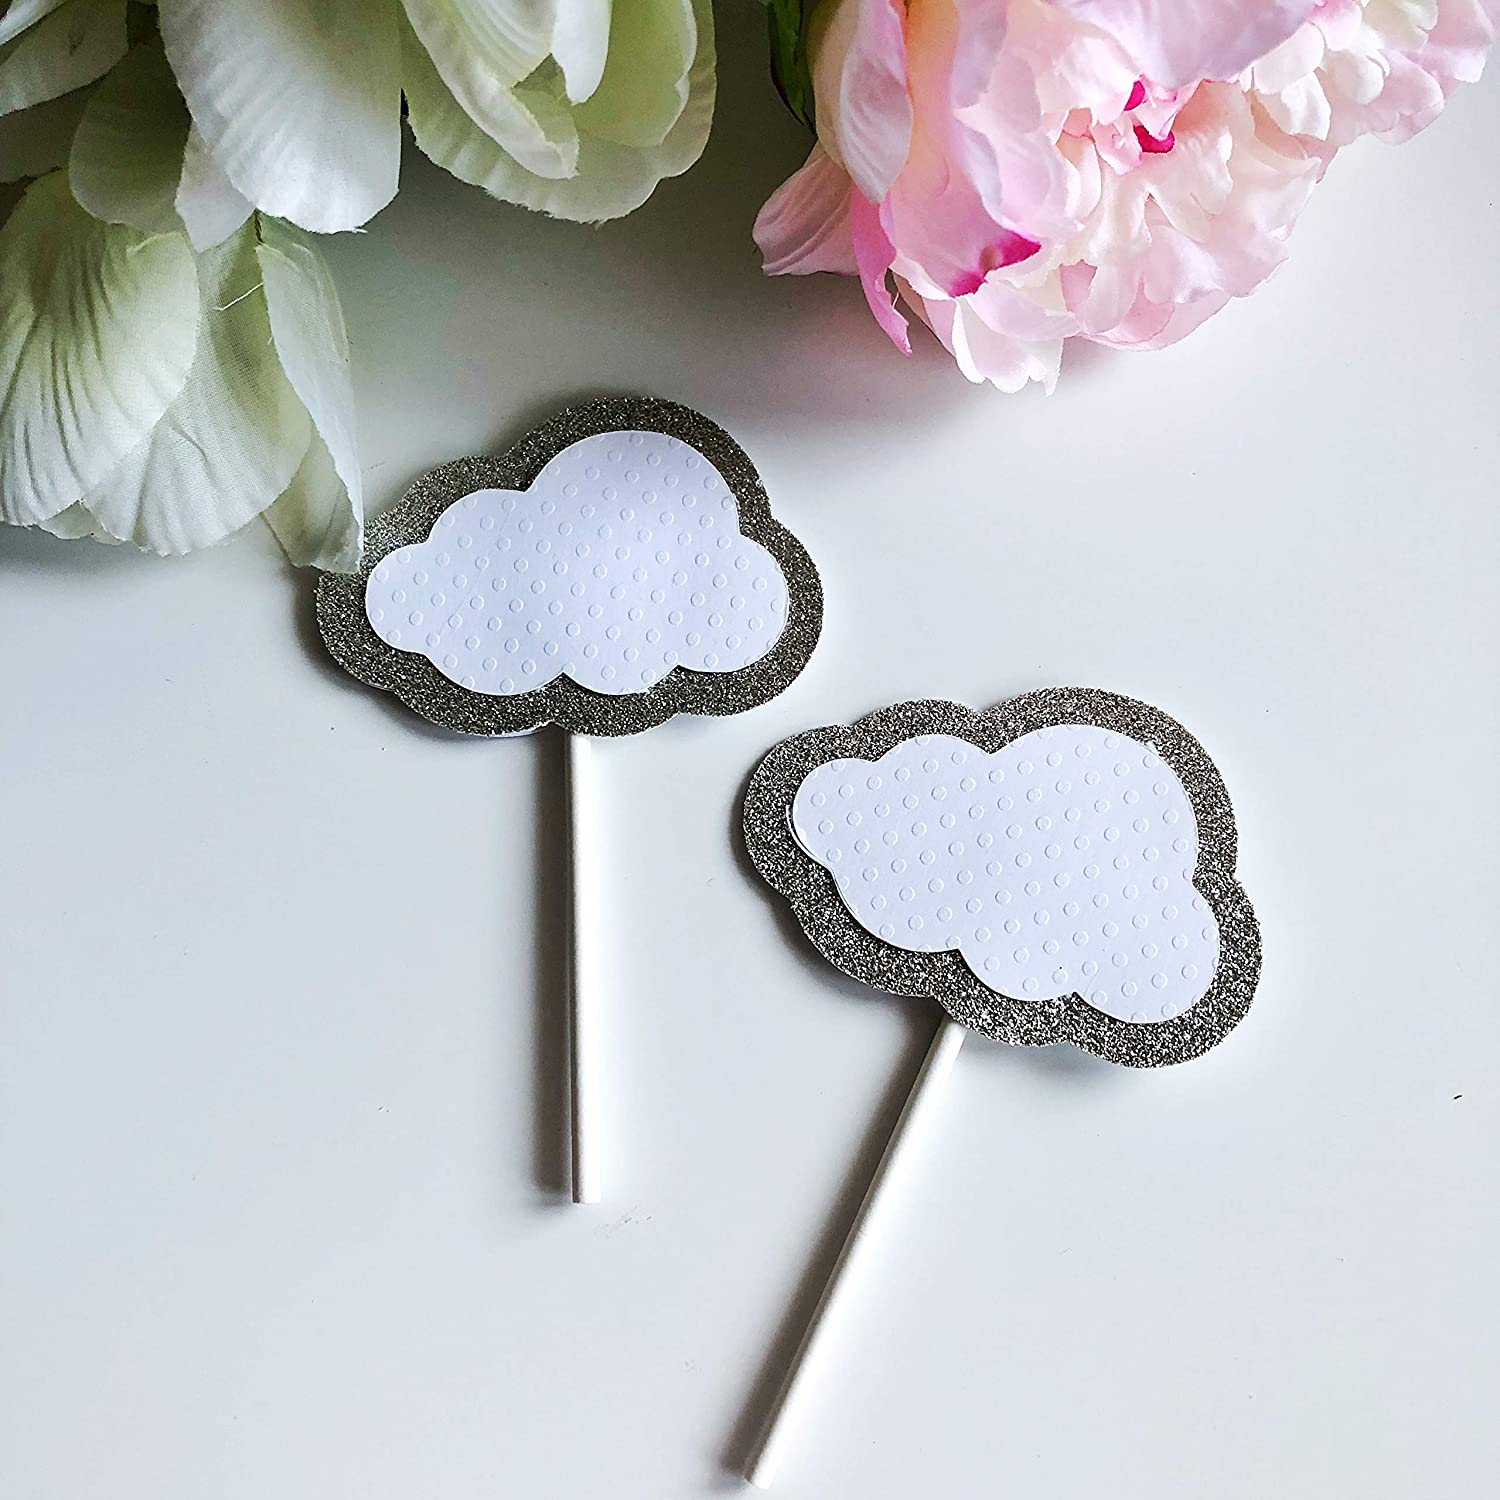 Cup Cake Topper,Baby shower topper,birthday party cupcake toppers Cloud 12 Sparkly Cloud cupcake toppers